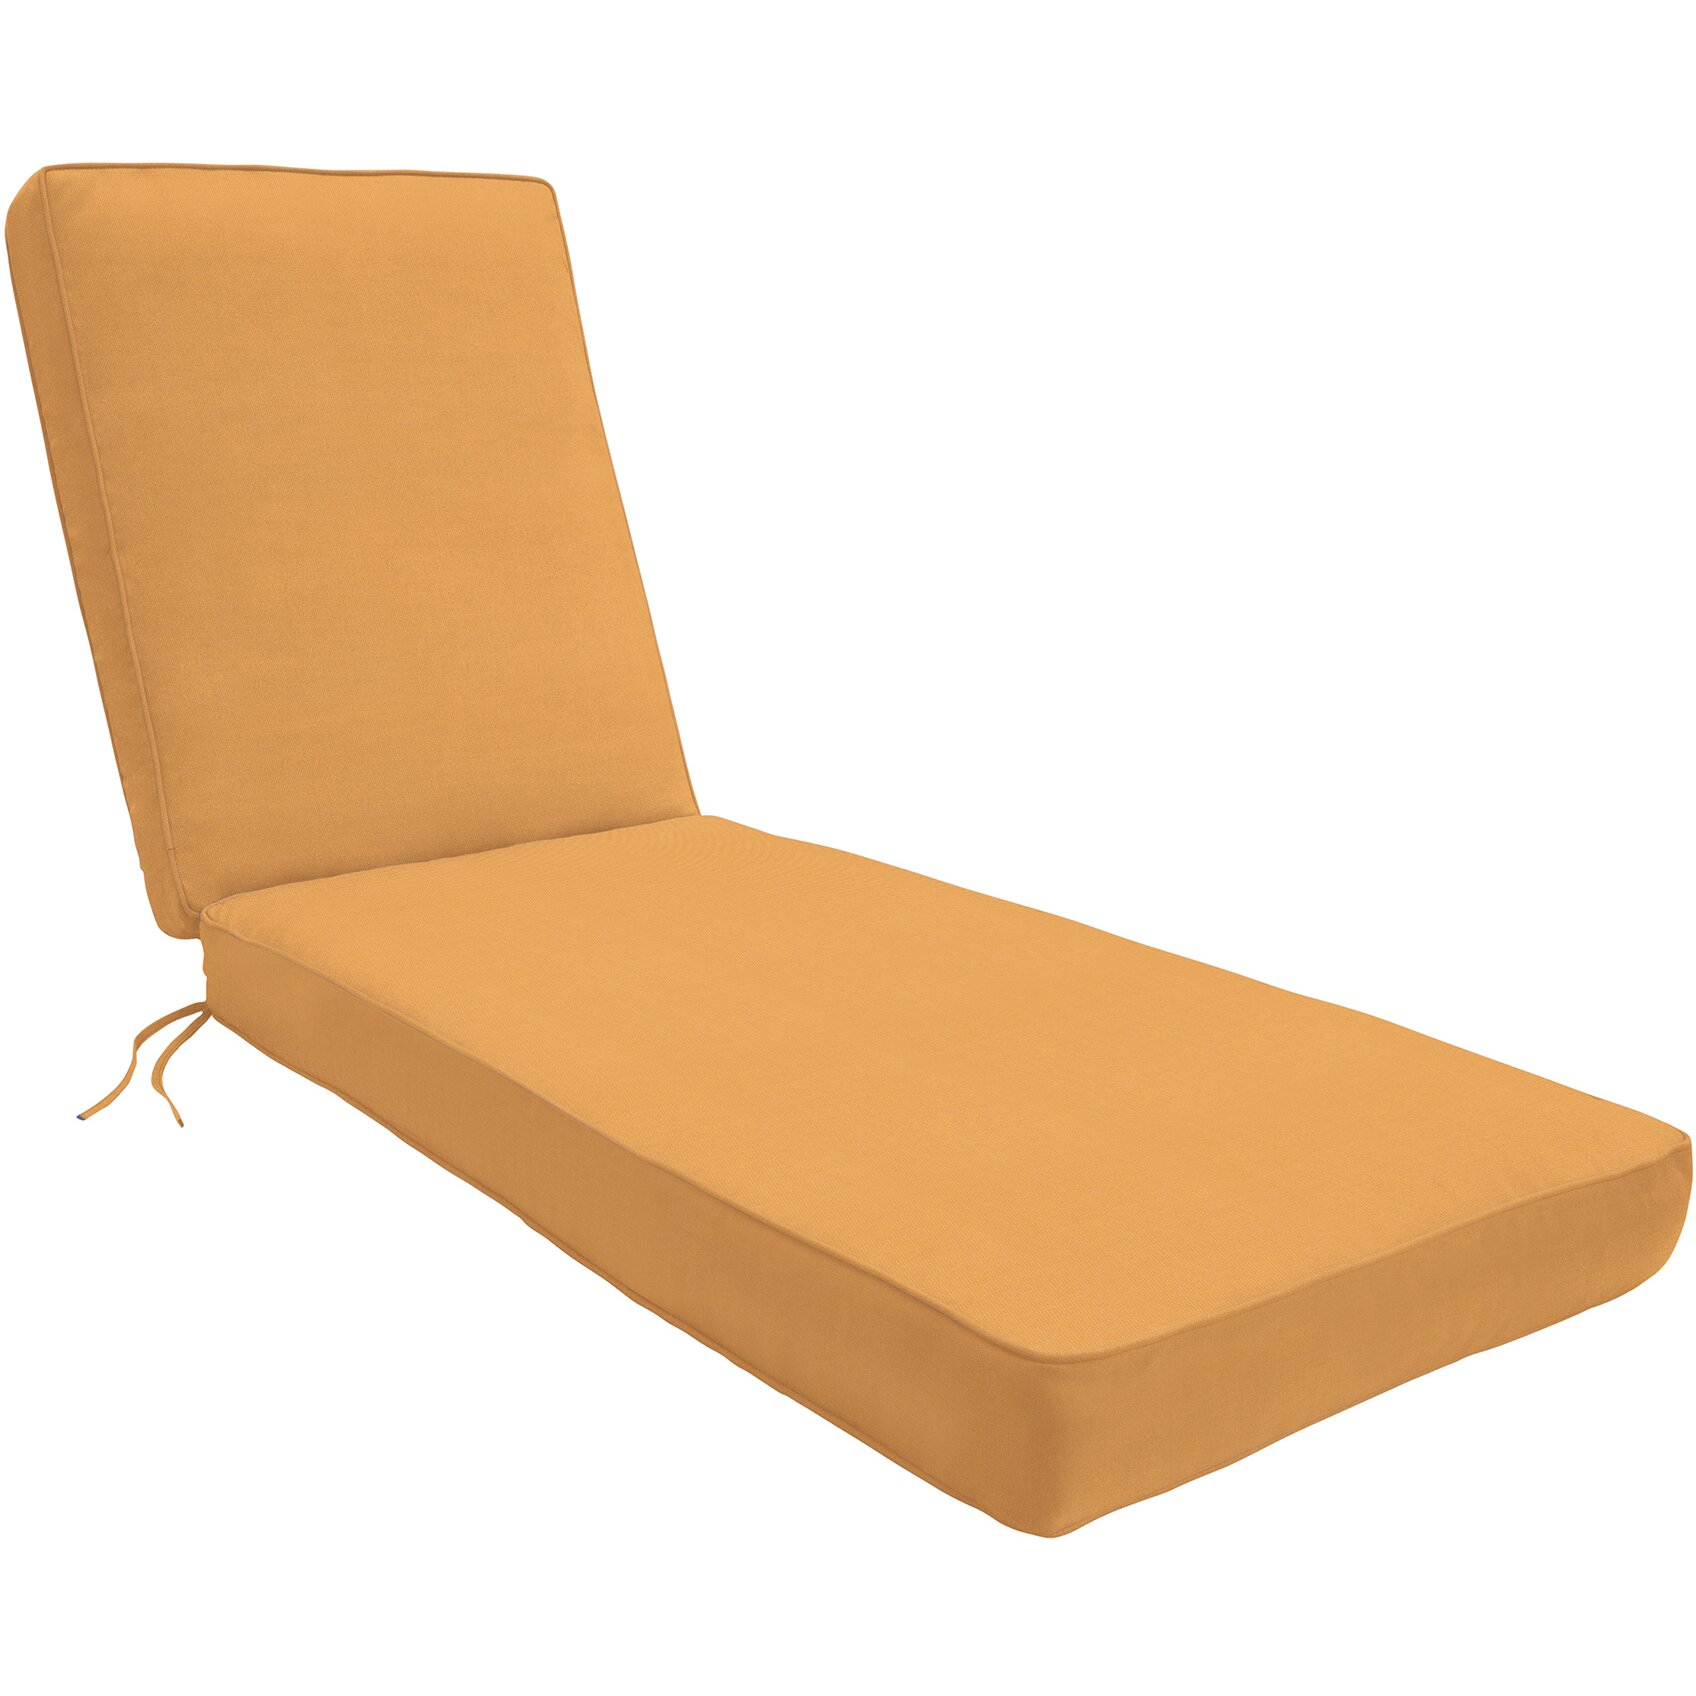 Wayfair custom outdoor cushions outdoor sunbrella chaise for Chaise longue cushions